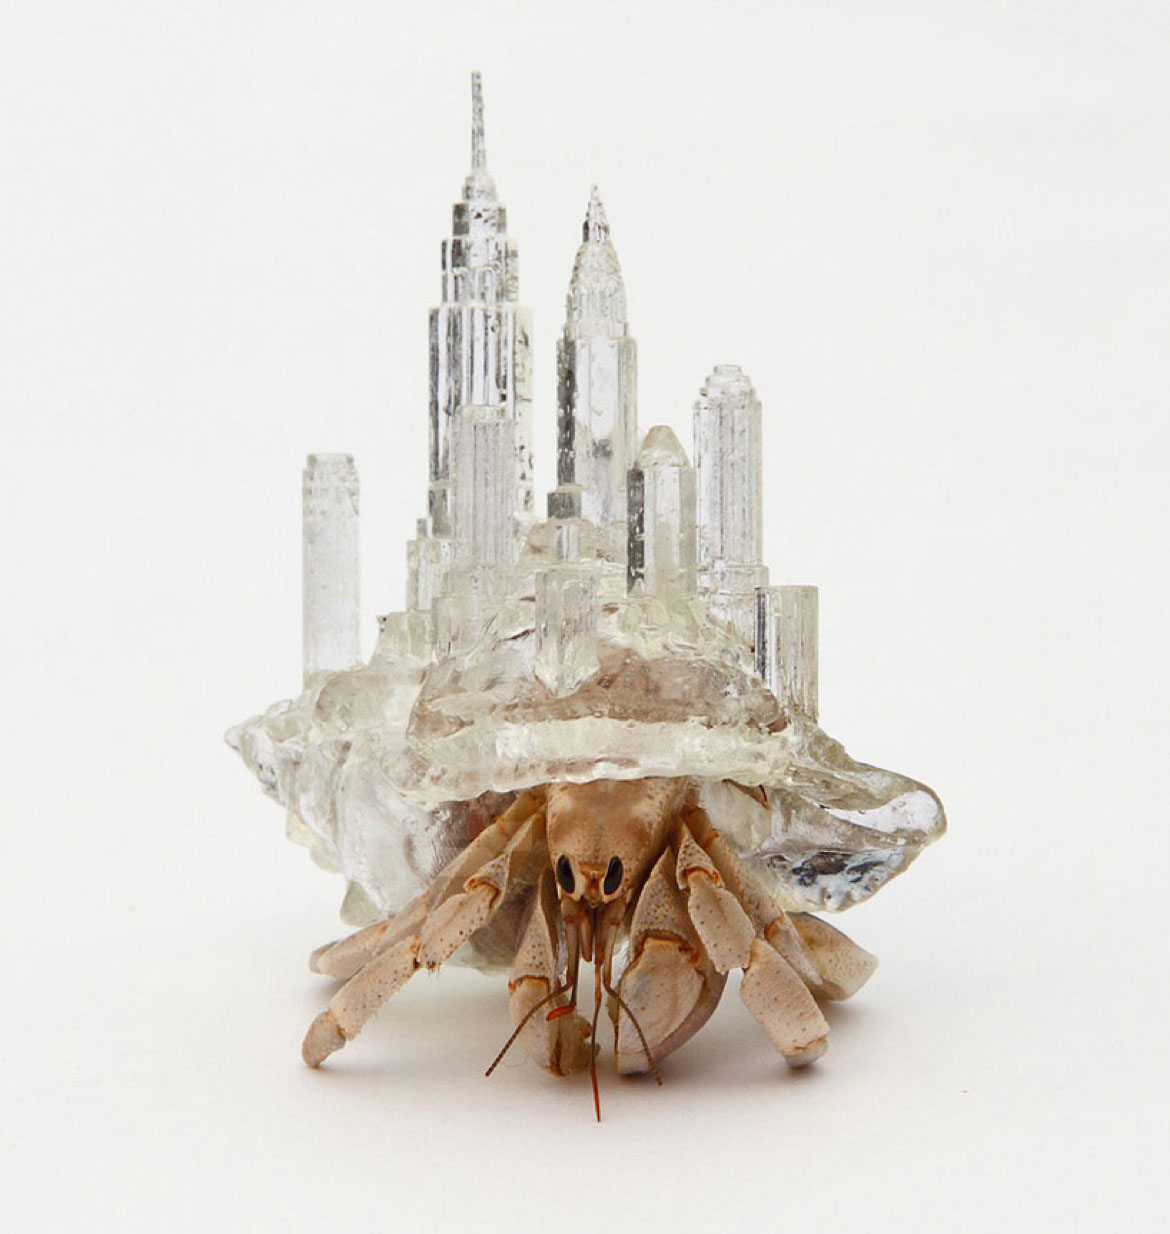 Hermit Crab Shells by Aki Inomata | Yellowtrace